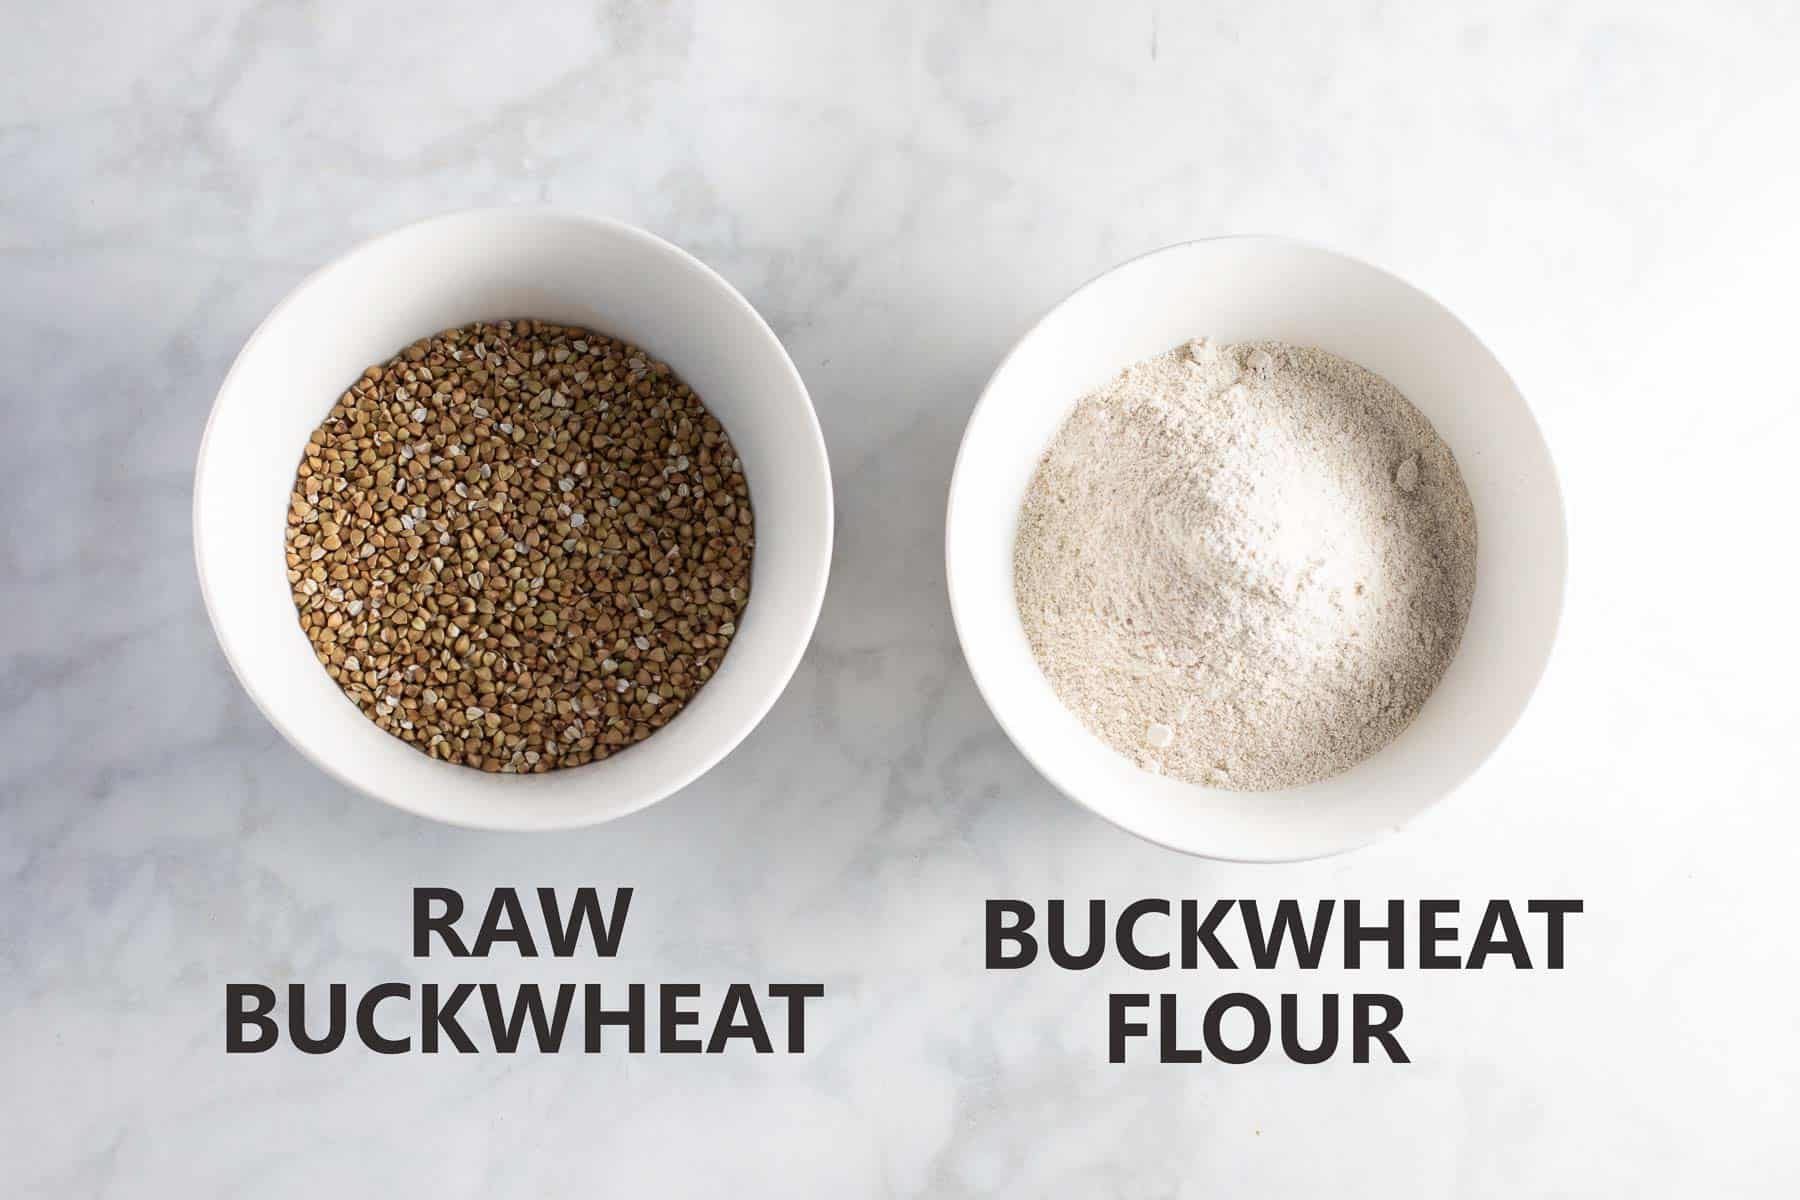 white bowl of buckwheat groats and white bowl of buckwheat flour